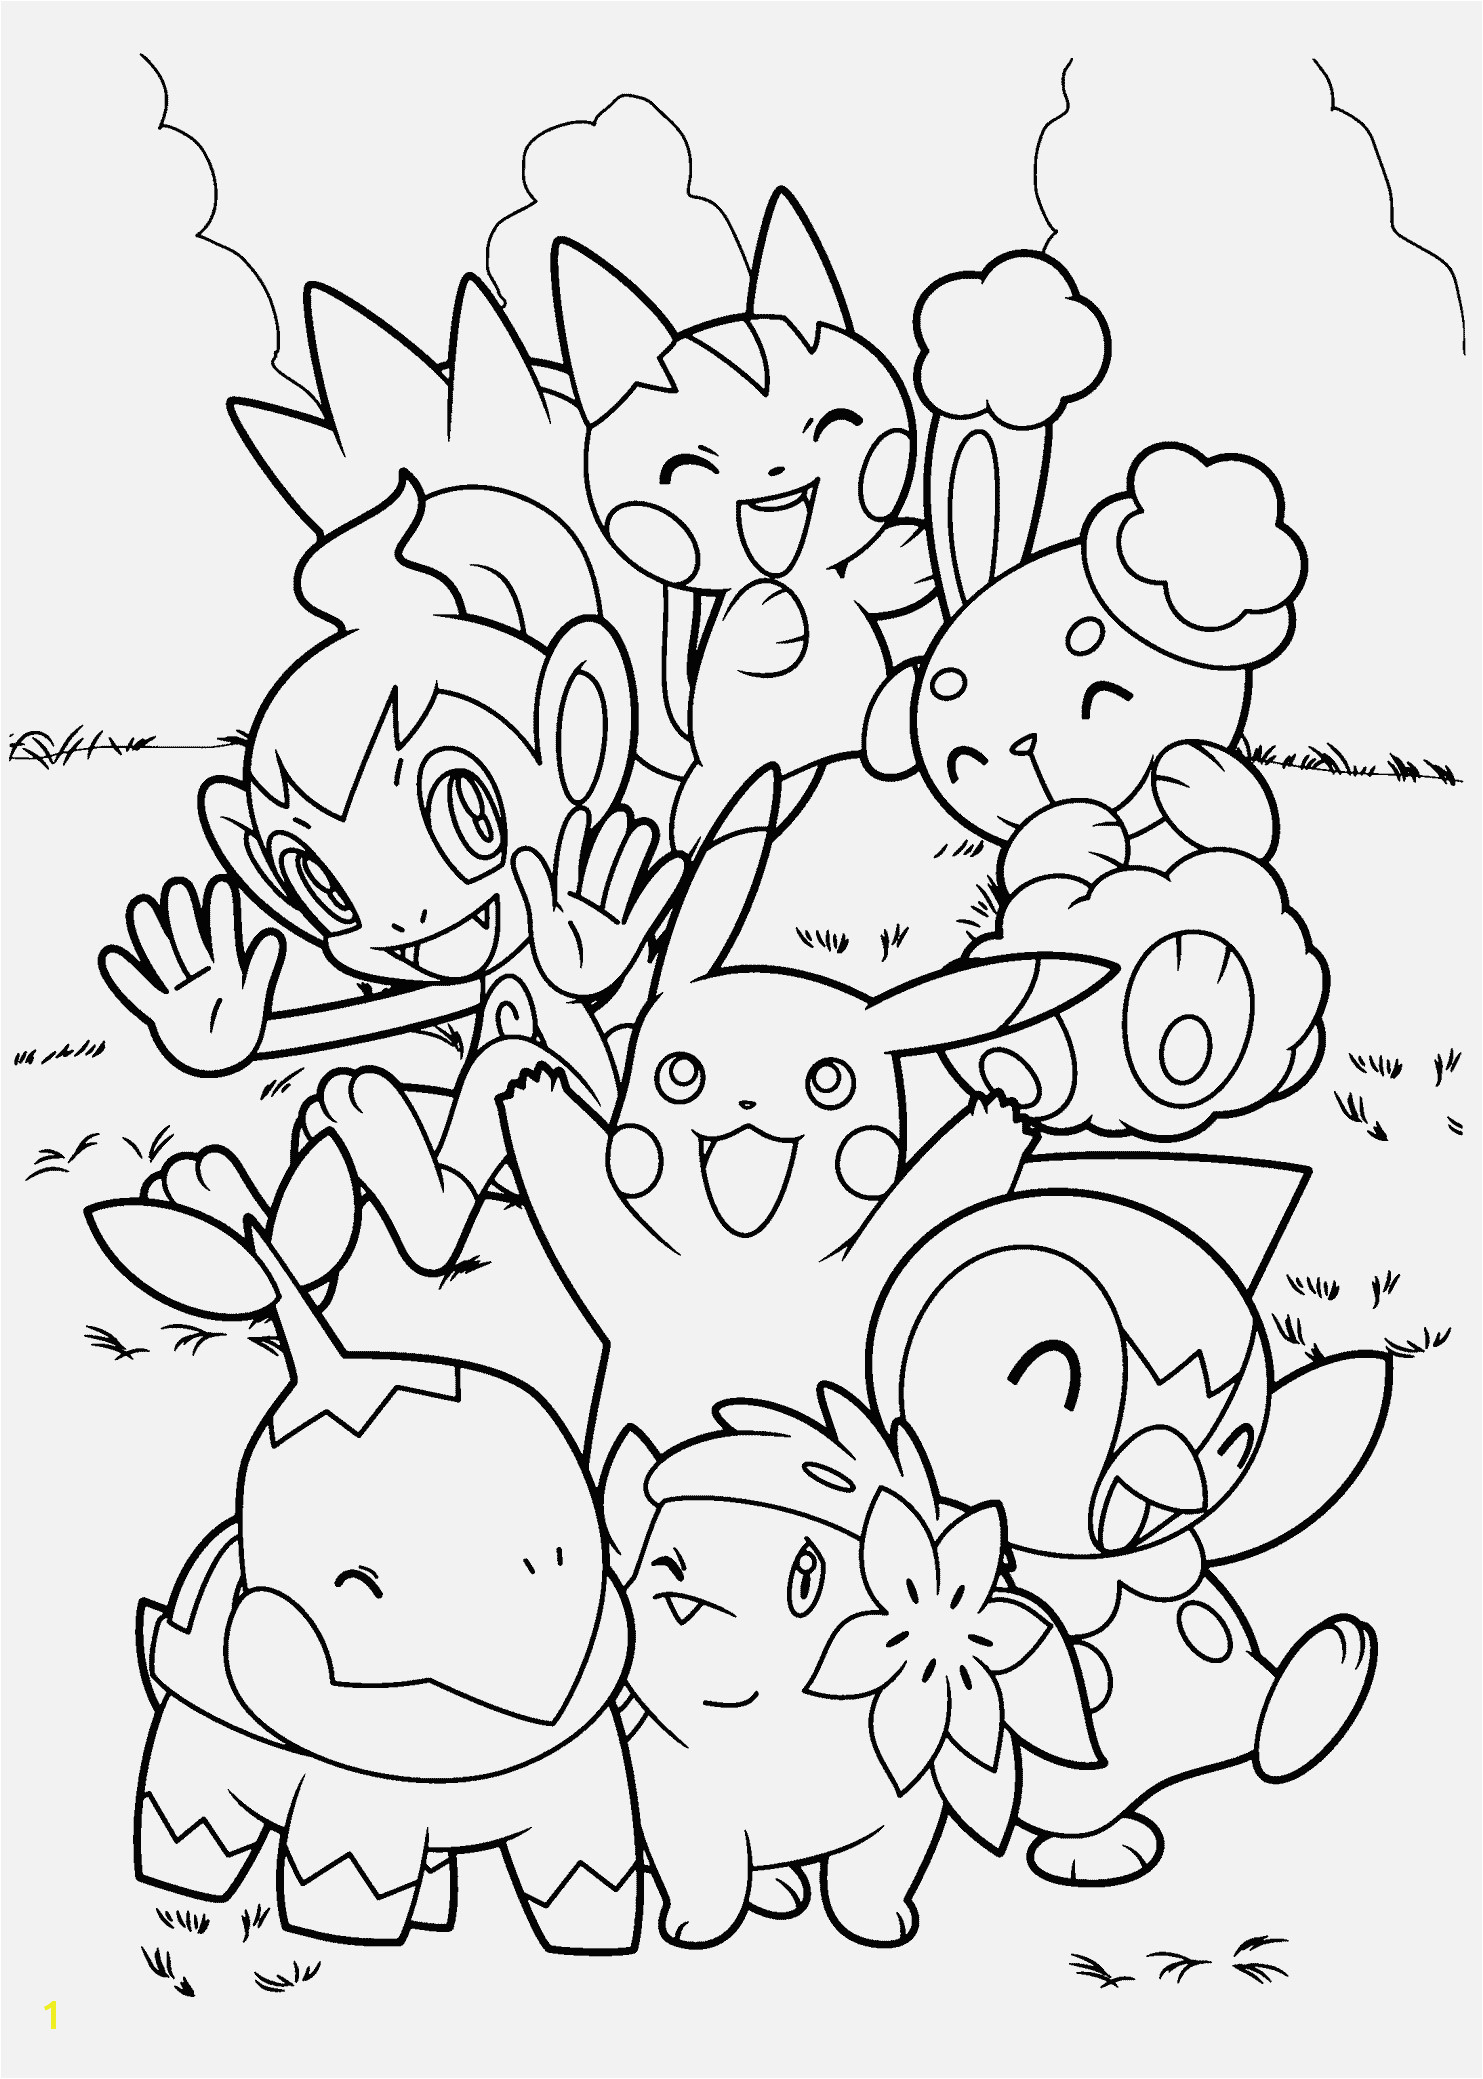 Pokemon Card Coloring Pages Printable top 75 Free Printable Pokemon Coloring Pages Line Pokemon Card